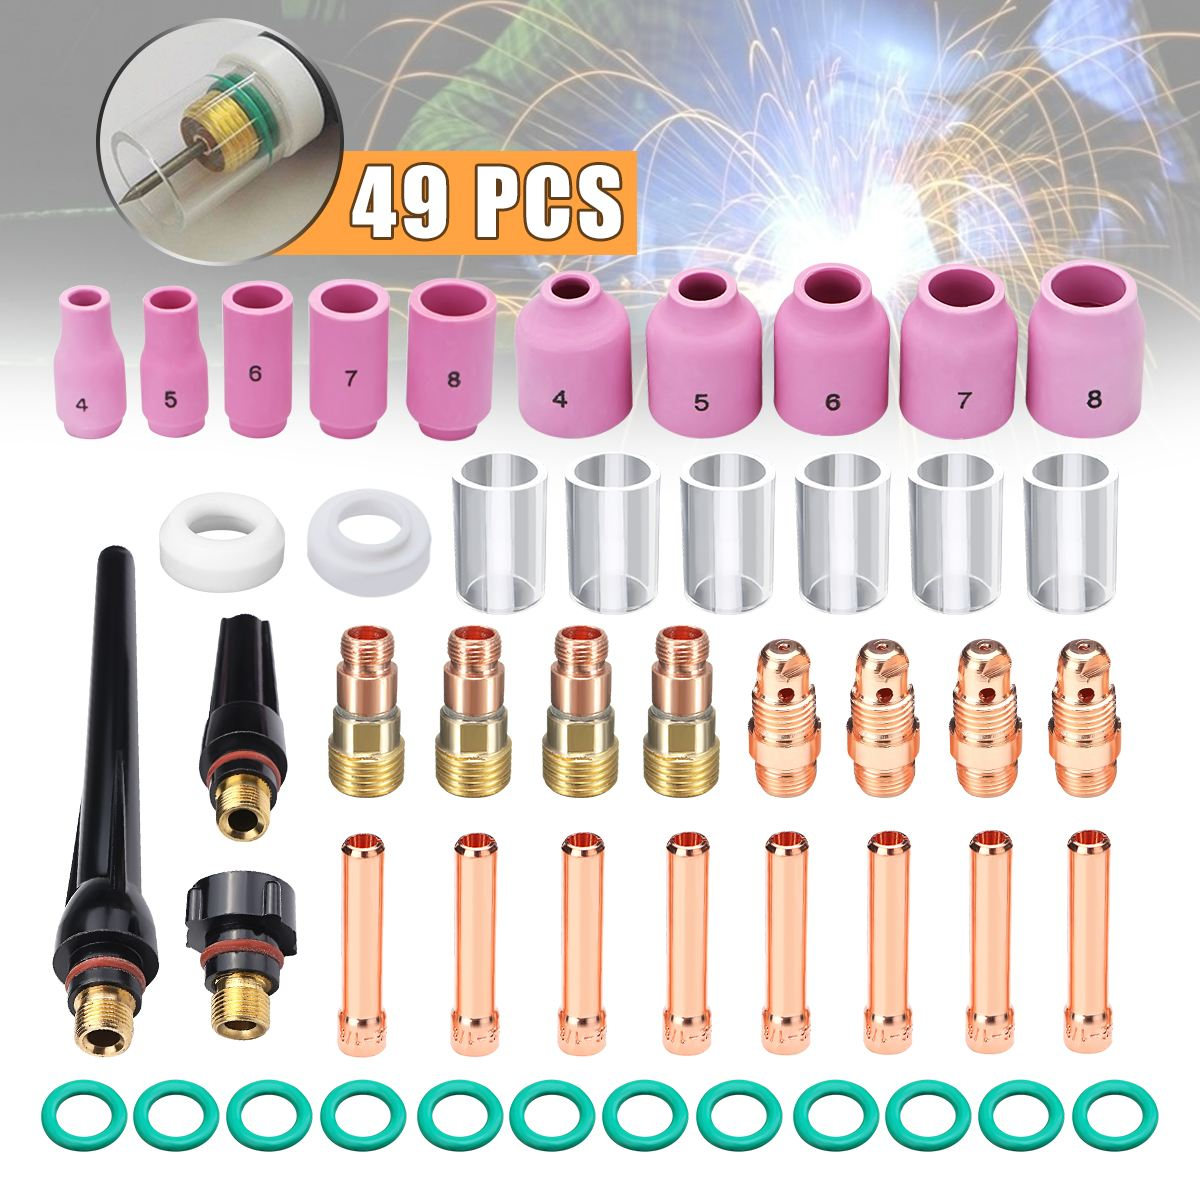 49pcs/set TIG Welding Torch Stubby Tig Gas Lens #10 Pyrex Glass Cup Kit For WP-17/18/26 Mayitr Welding Accessories New Arrival